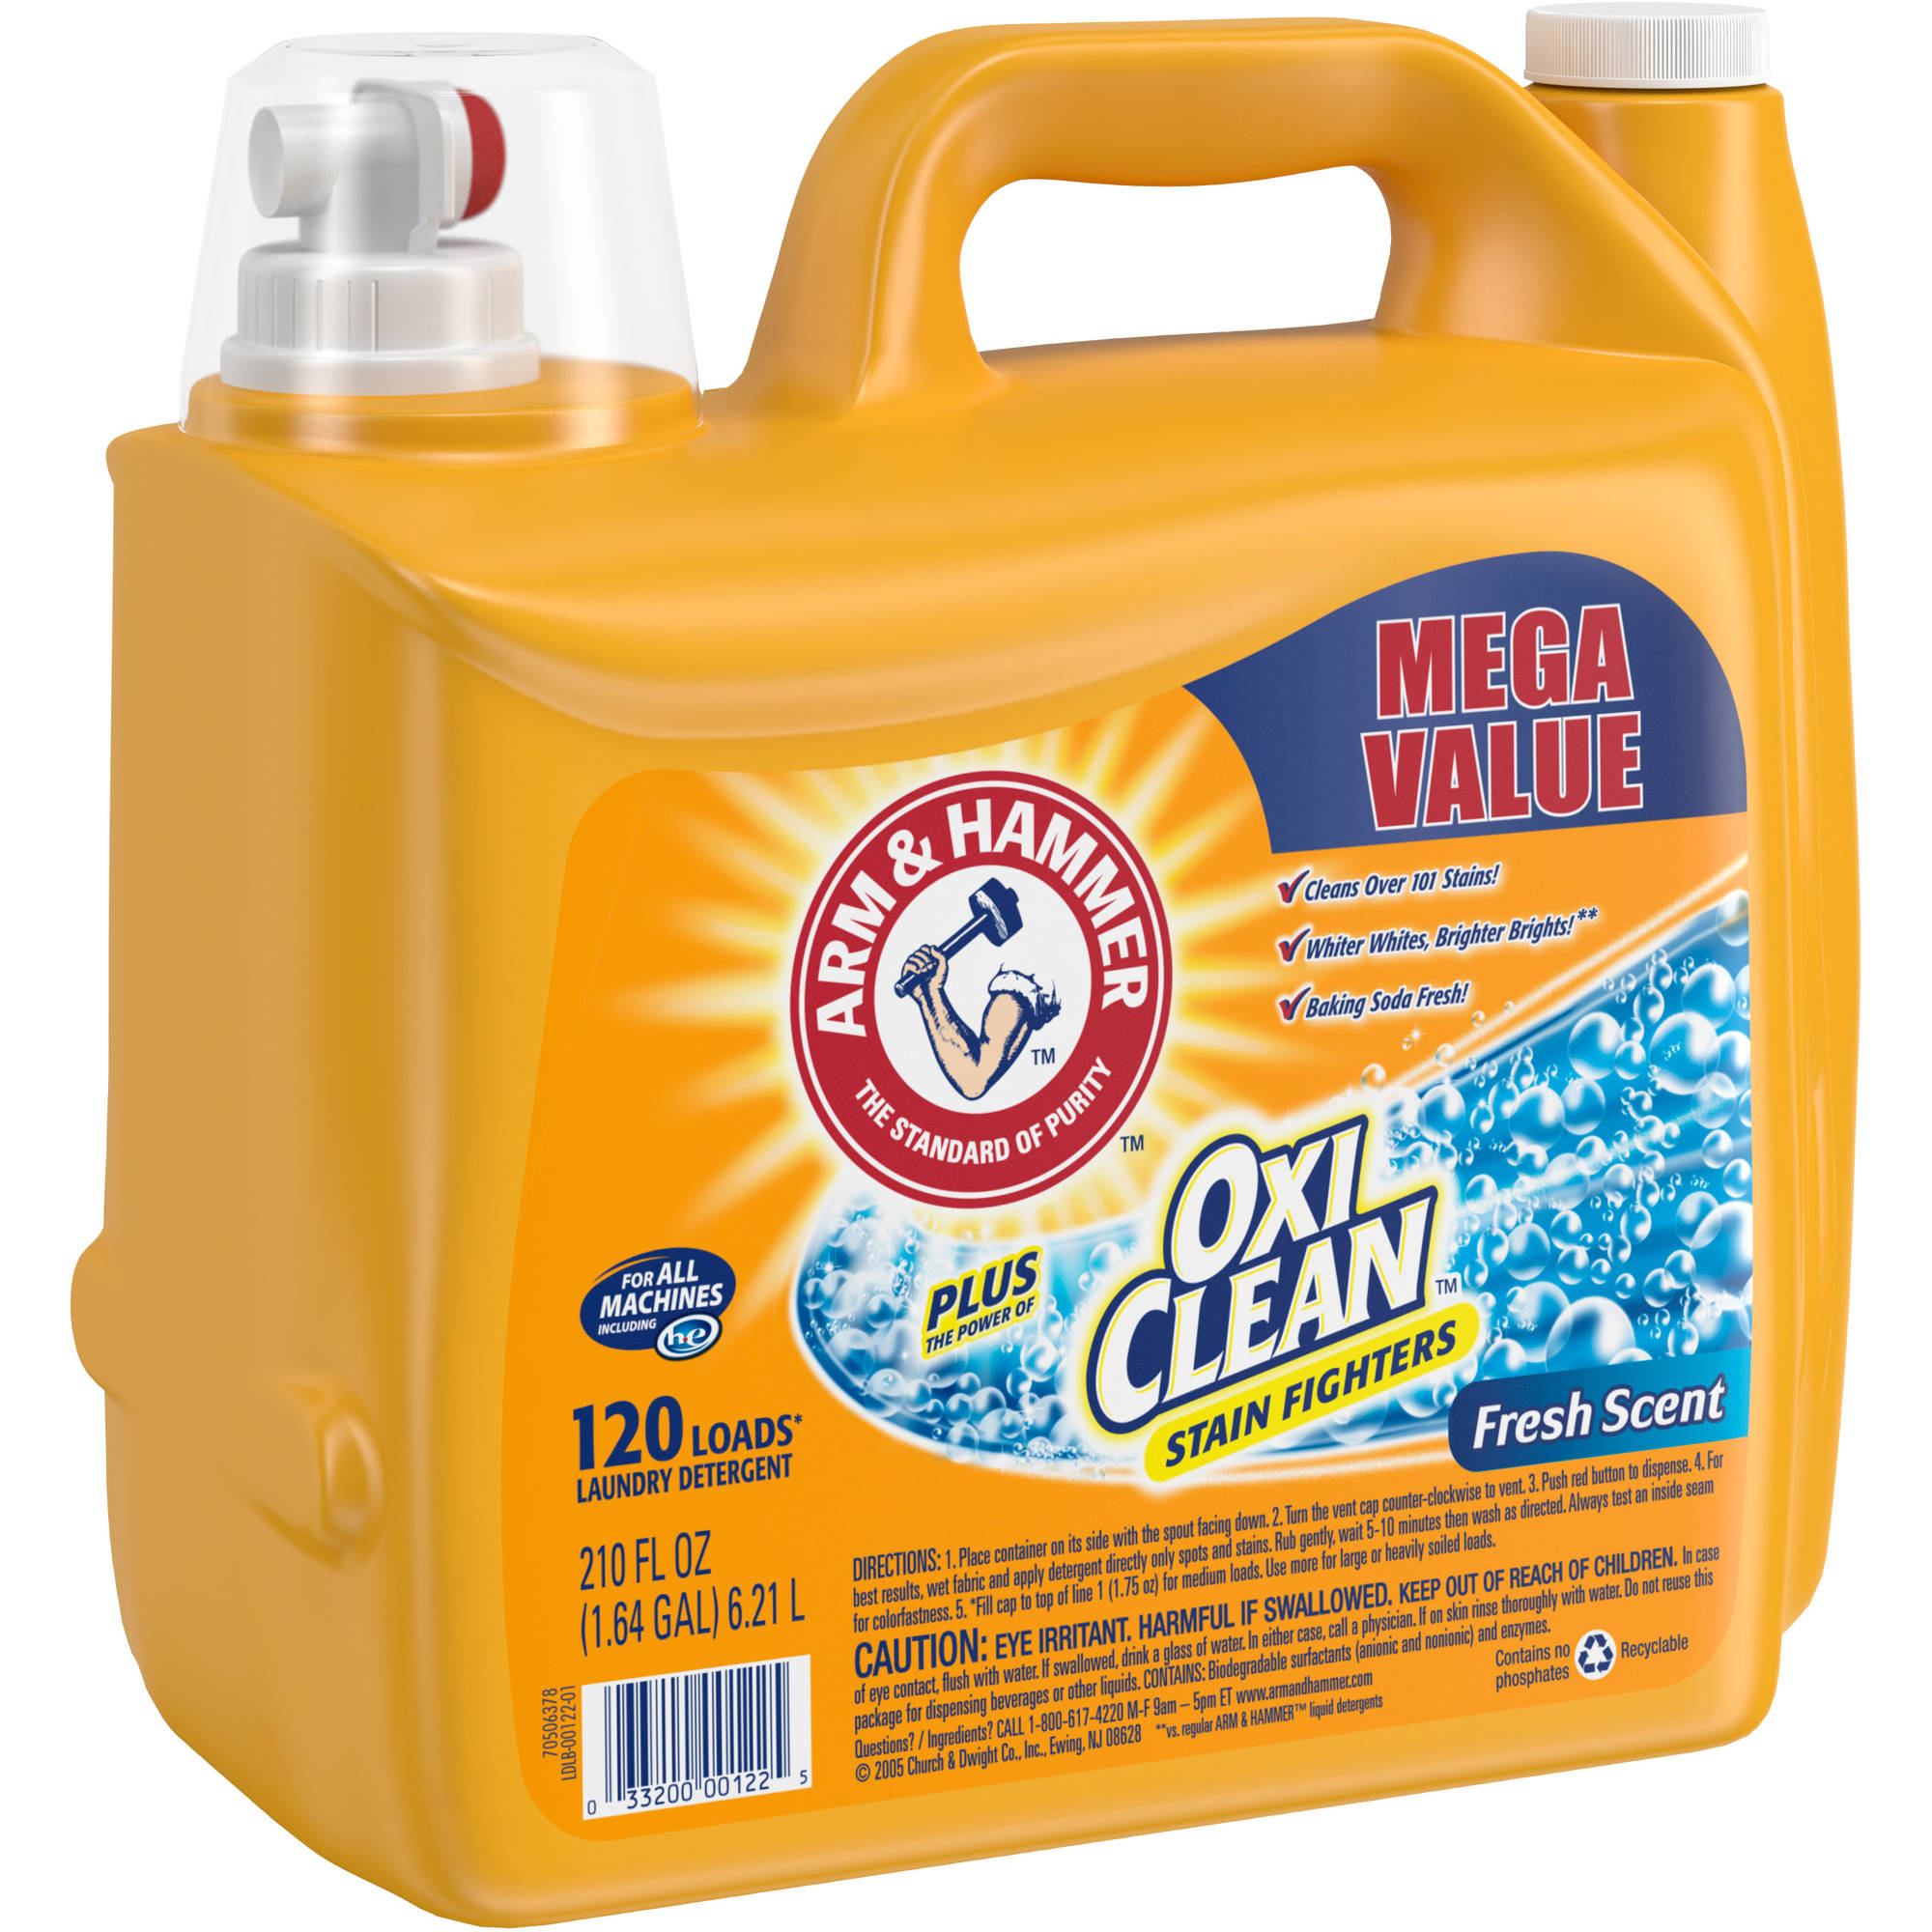 Is arm and hammer powder laundry detergent he - Arm Hammer Plus Oxiclean Stain Fighters Fresh Scent Liquid Laundry Detergent 210 Fl Oz Walmart Com